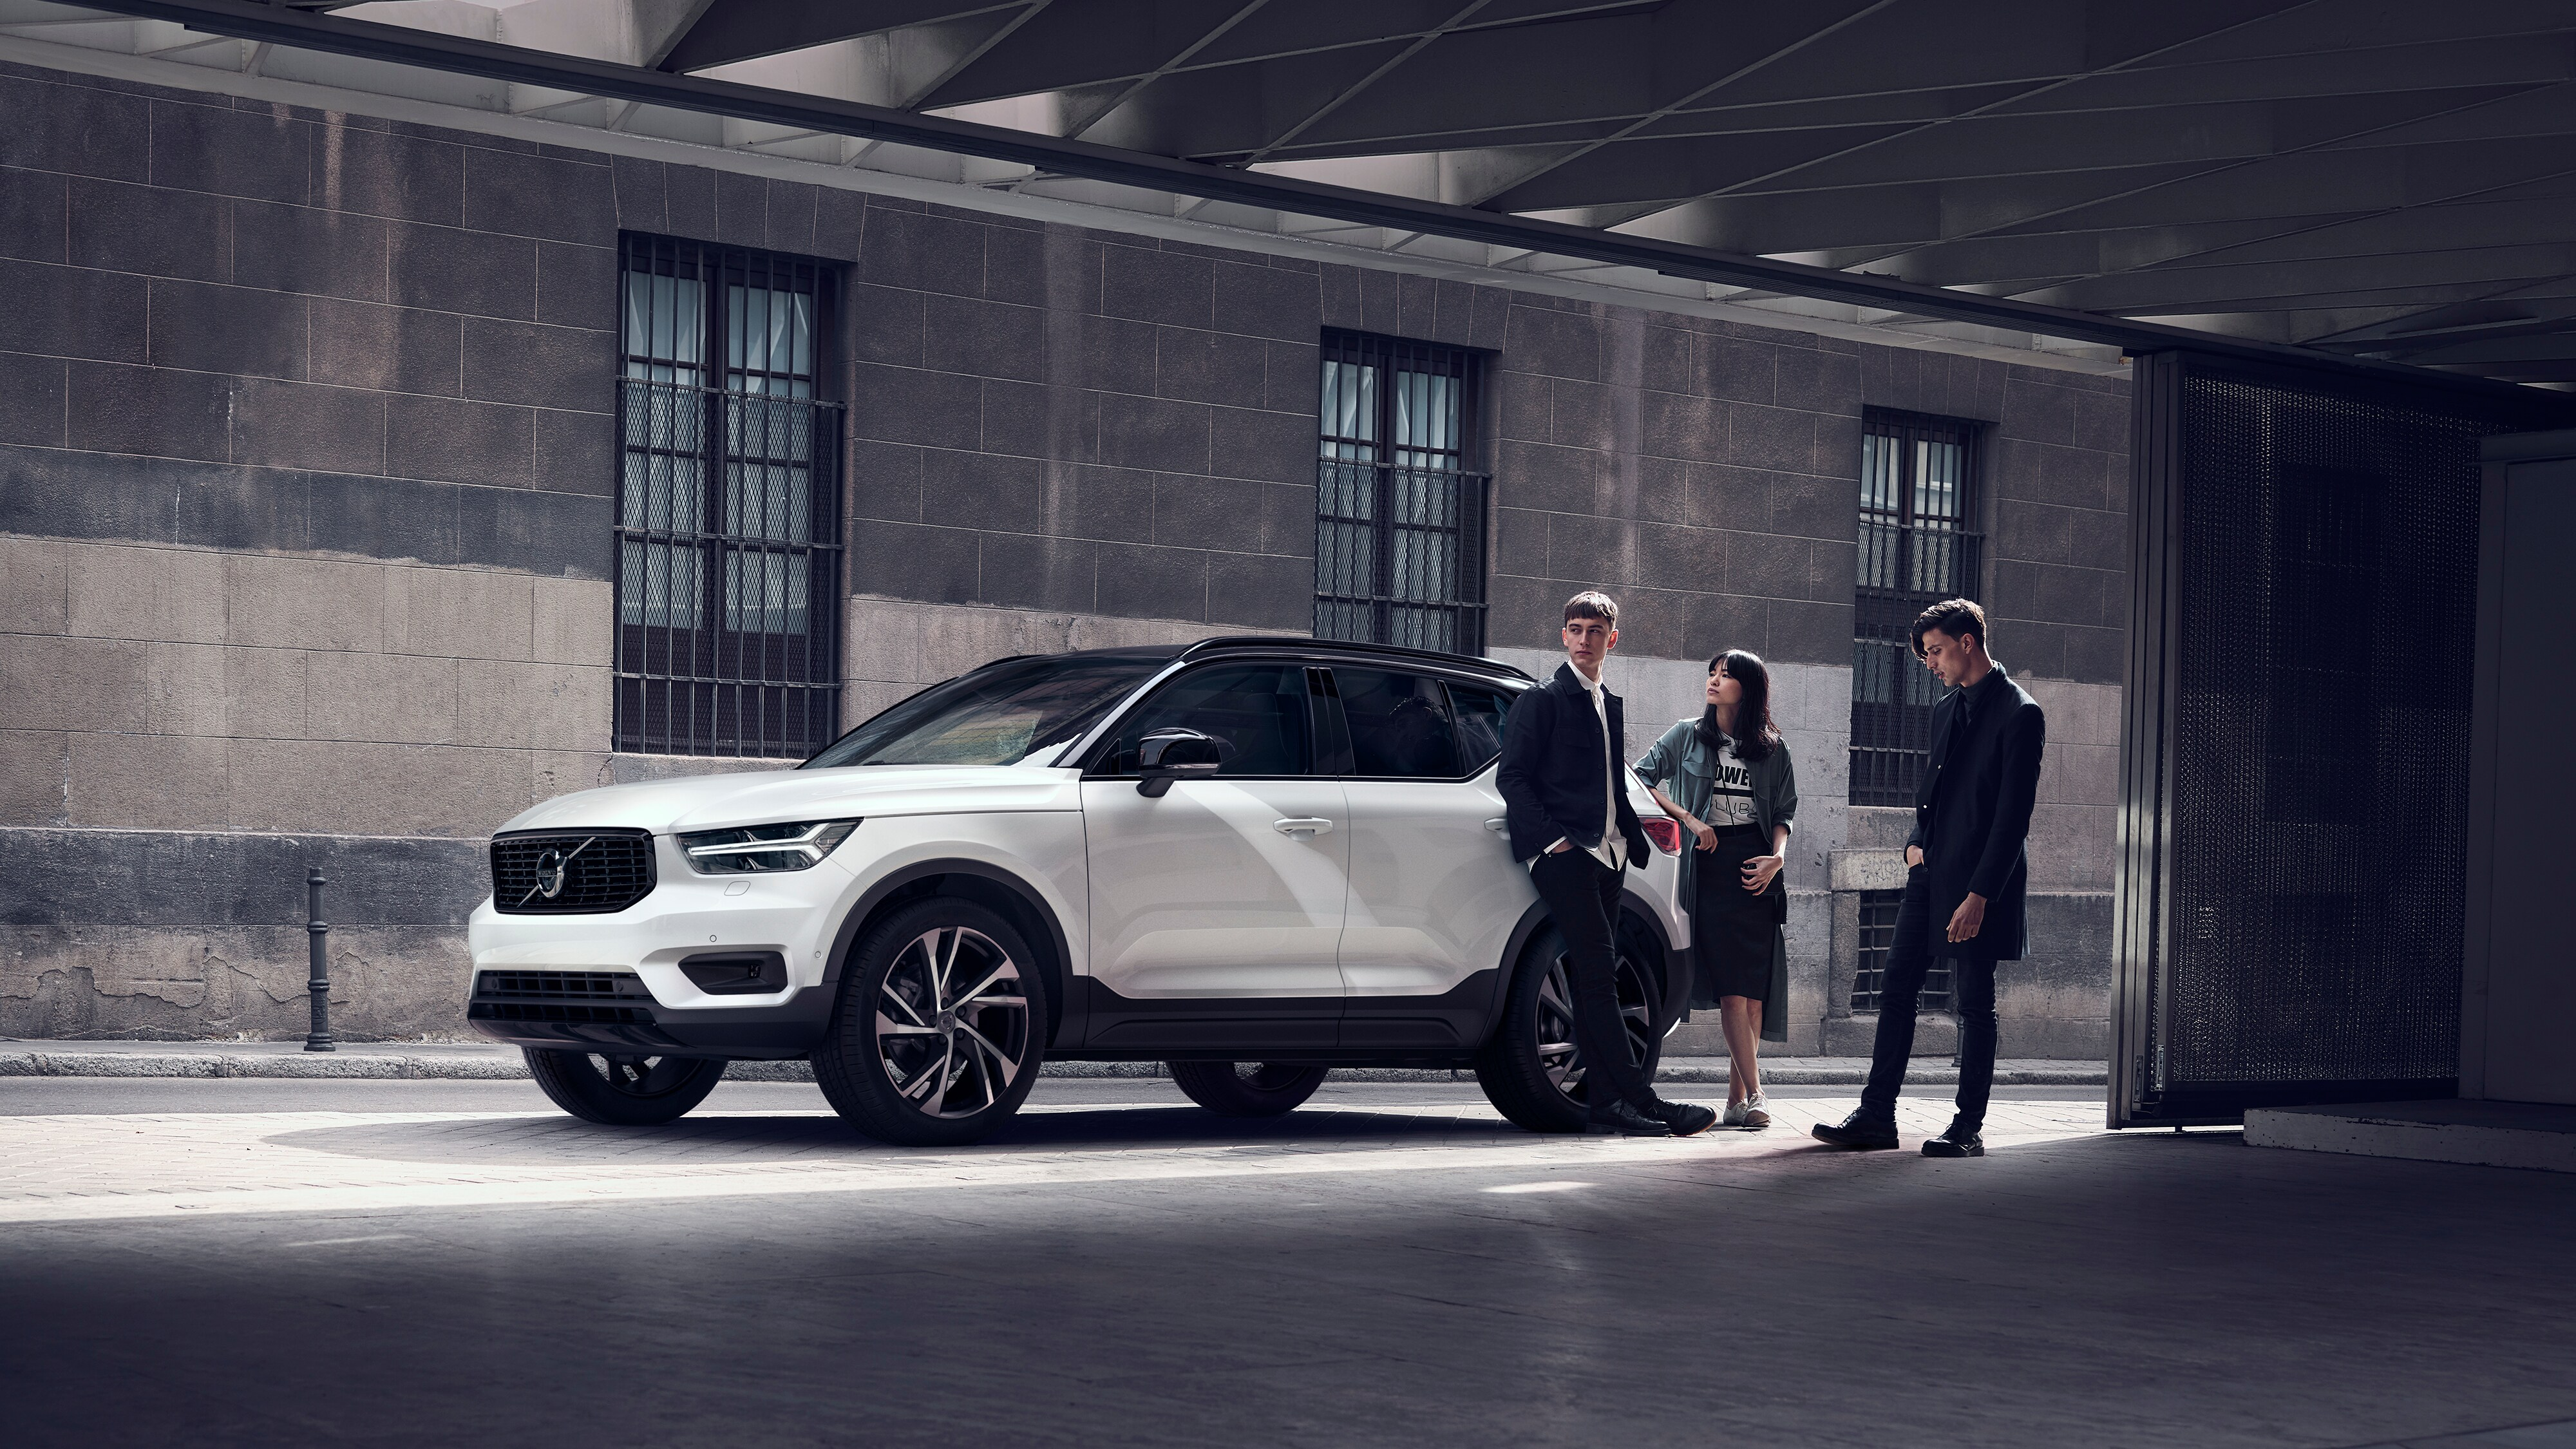 A Volvo XC40 R-Design parked in an urban environment with three young people